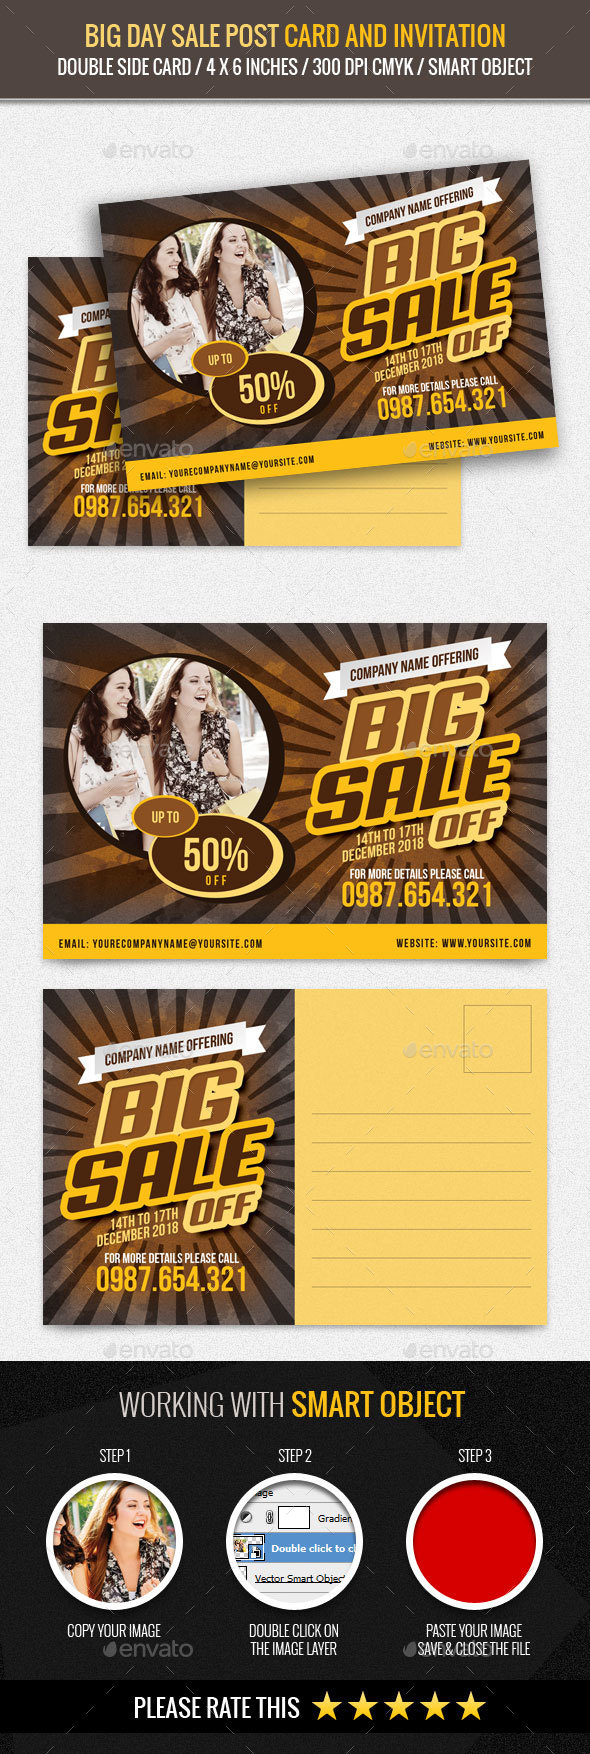 Big Day Sale Post Card Template